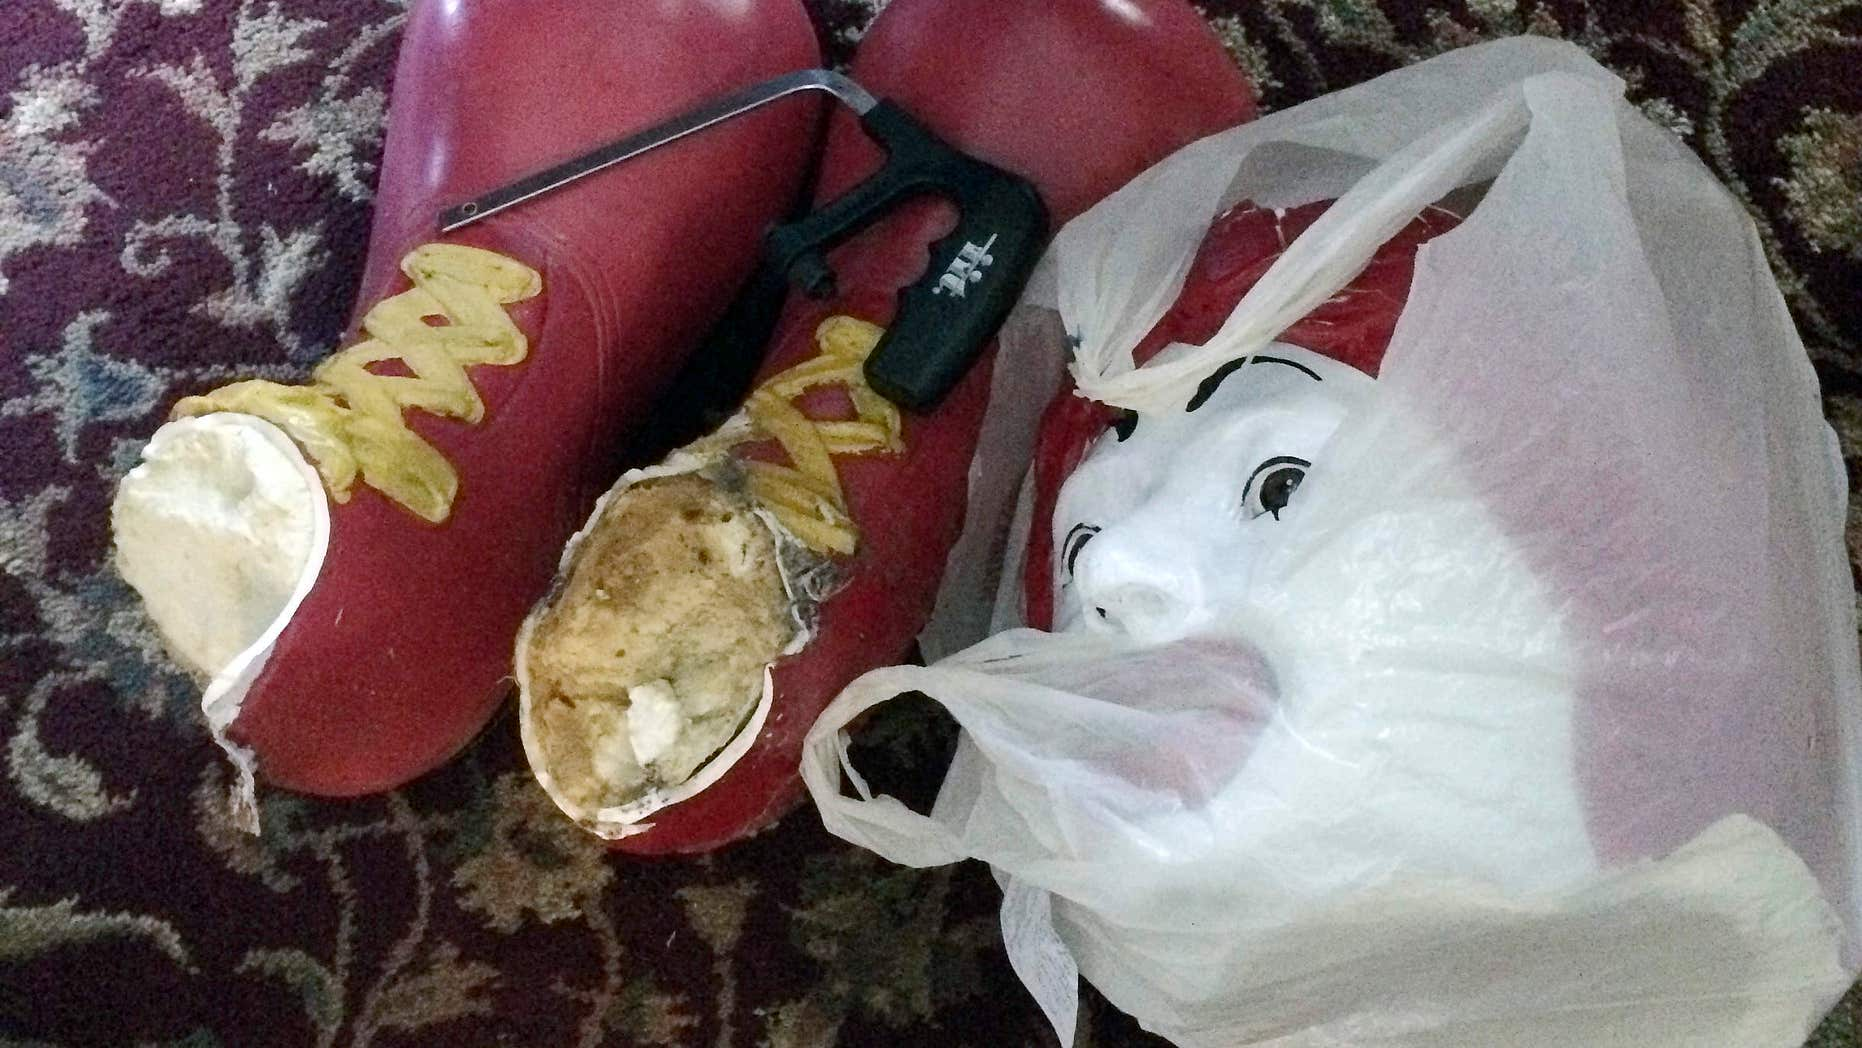 Oct. 22, 2015: This photo provided by Ronald McDonald House Charities, shows the decapitated head and feet from the Ronald McDonald statue that sits on a bench outside the Ronald McDonald House in Burlington, Vt.